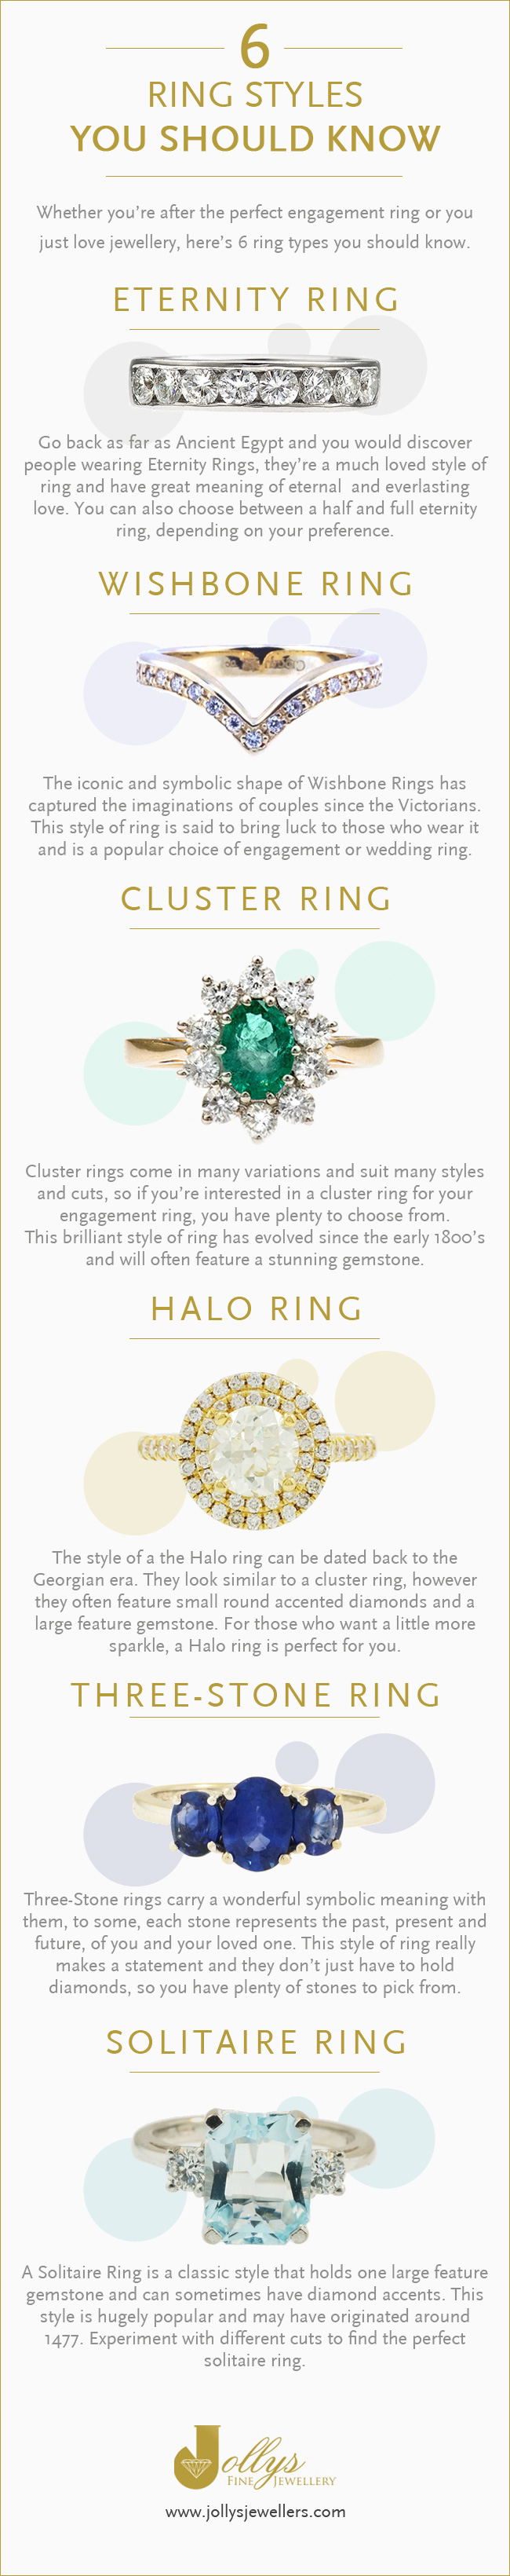 6 Ring Styles You Should Know [Infographic] Jollys Jewellers